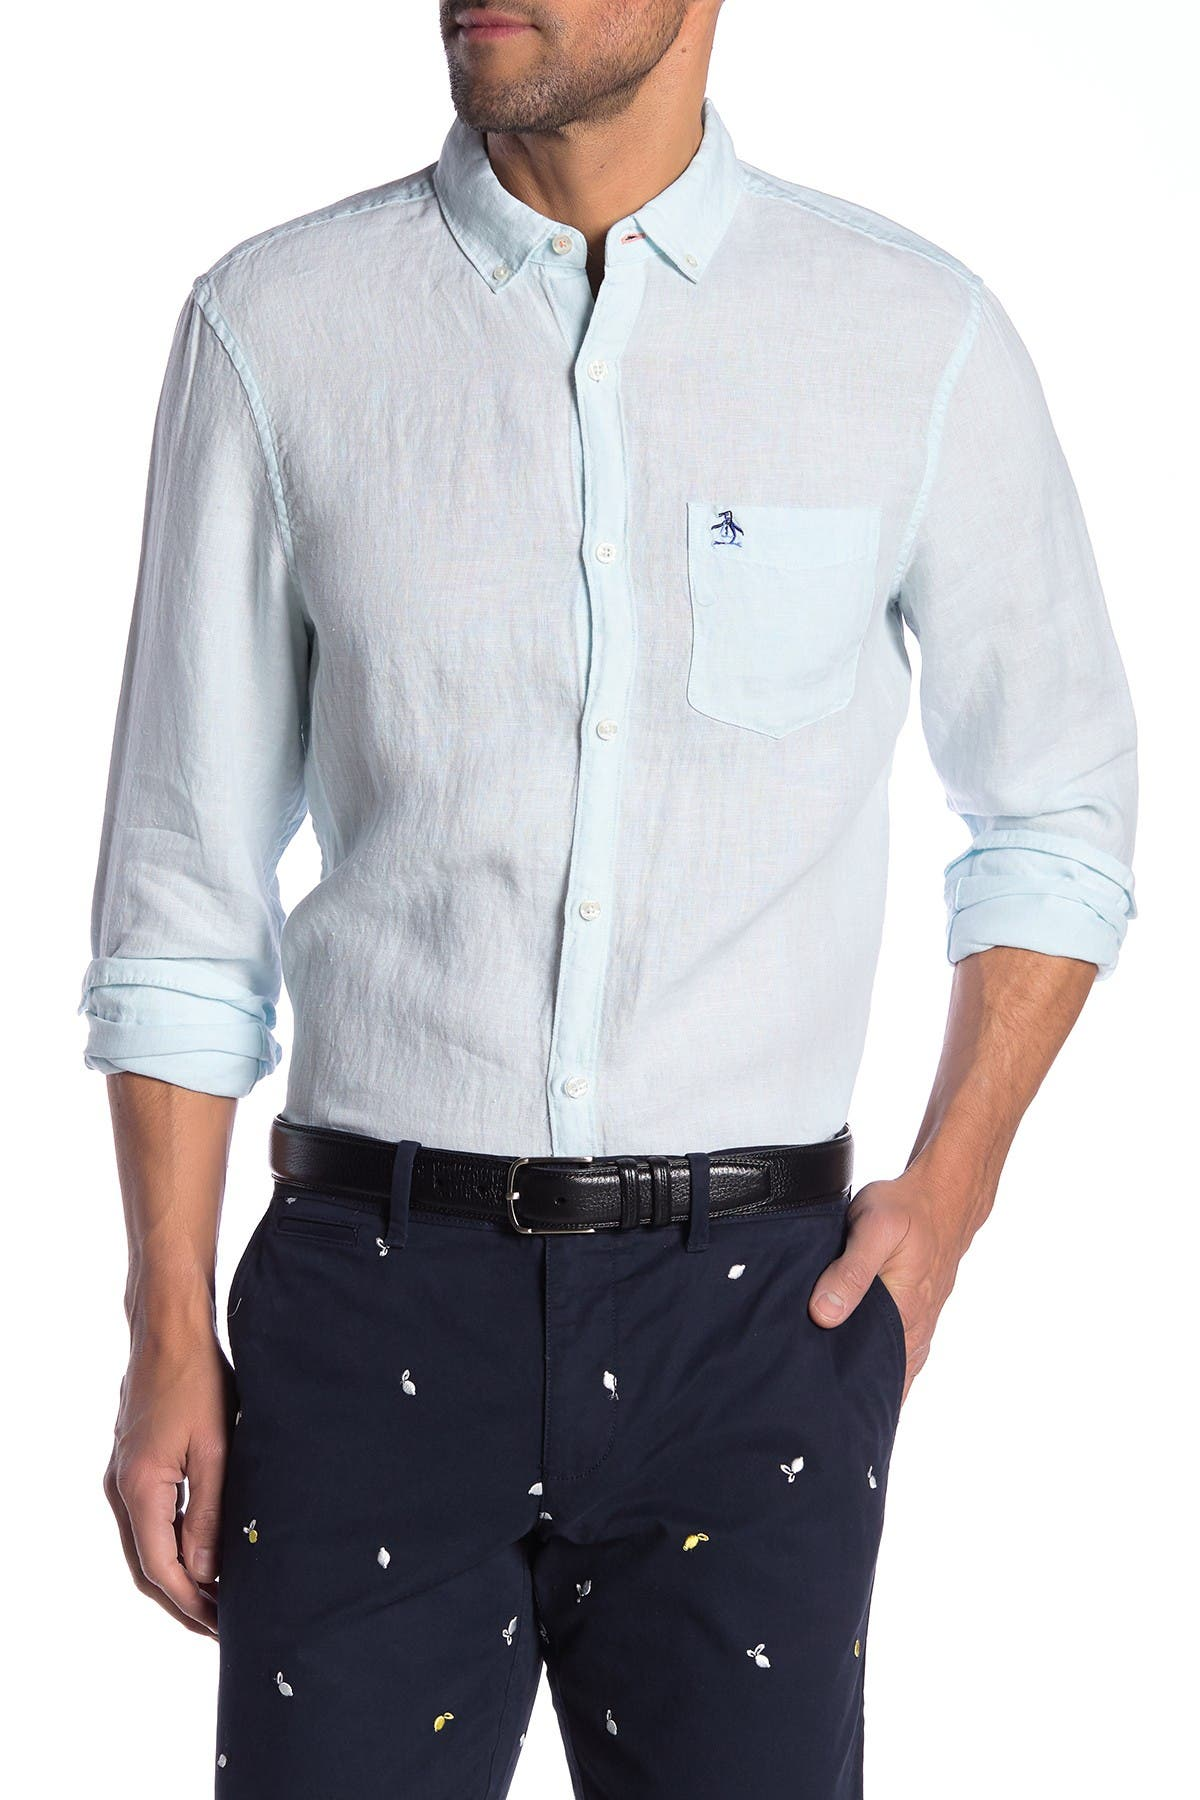 Image of Original Penguin Linen Slim Fit Shirt